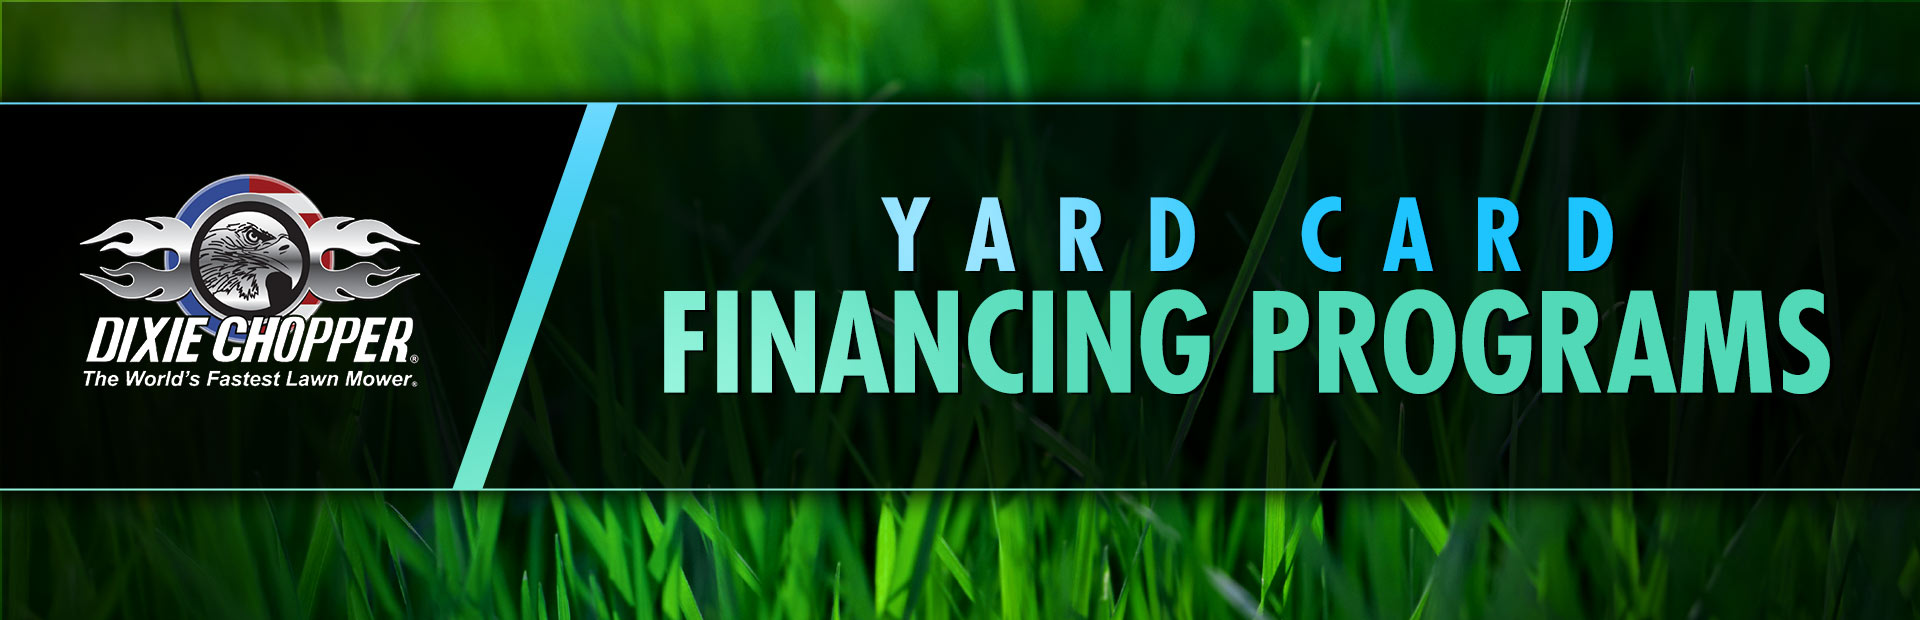 Dixie Chopper: Yard Card Financing Programs